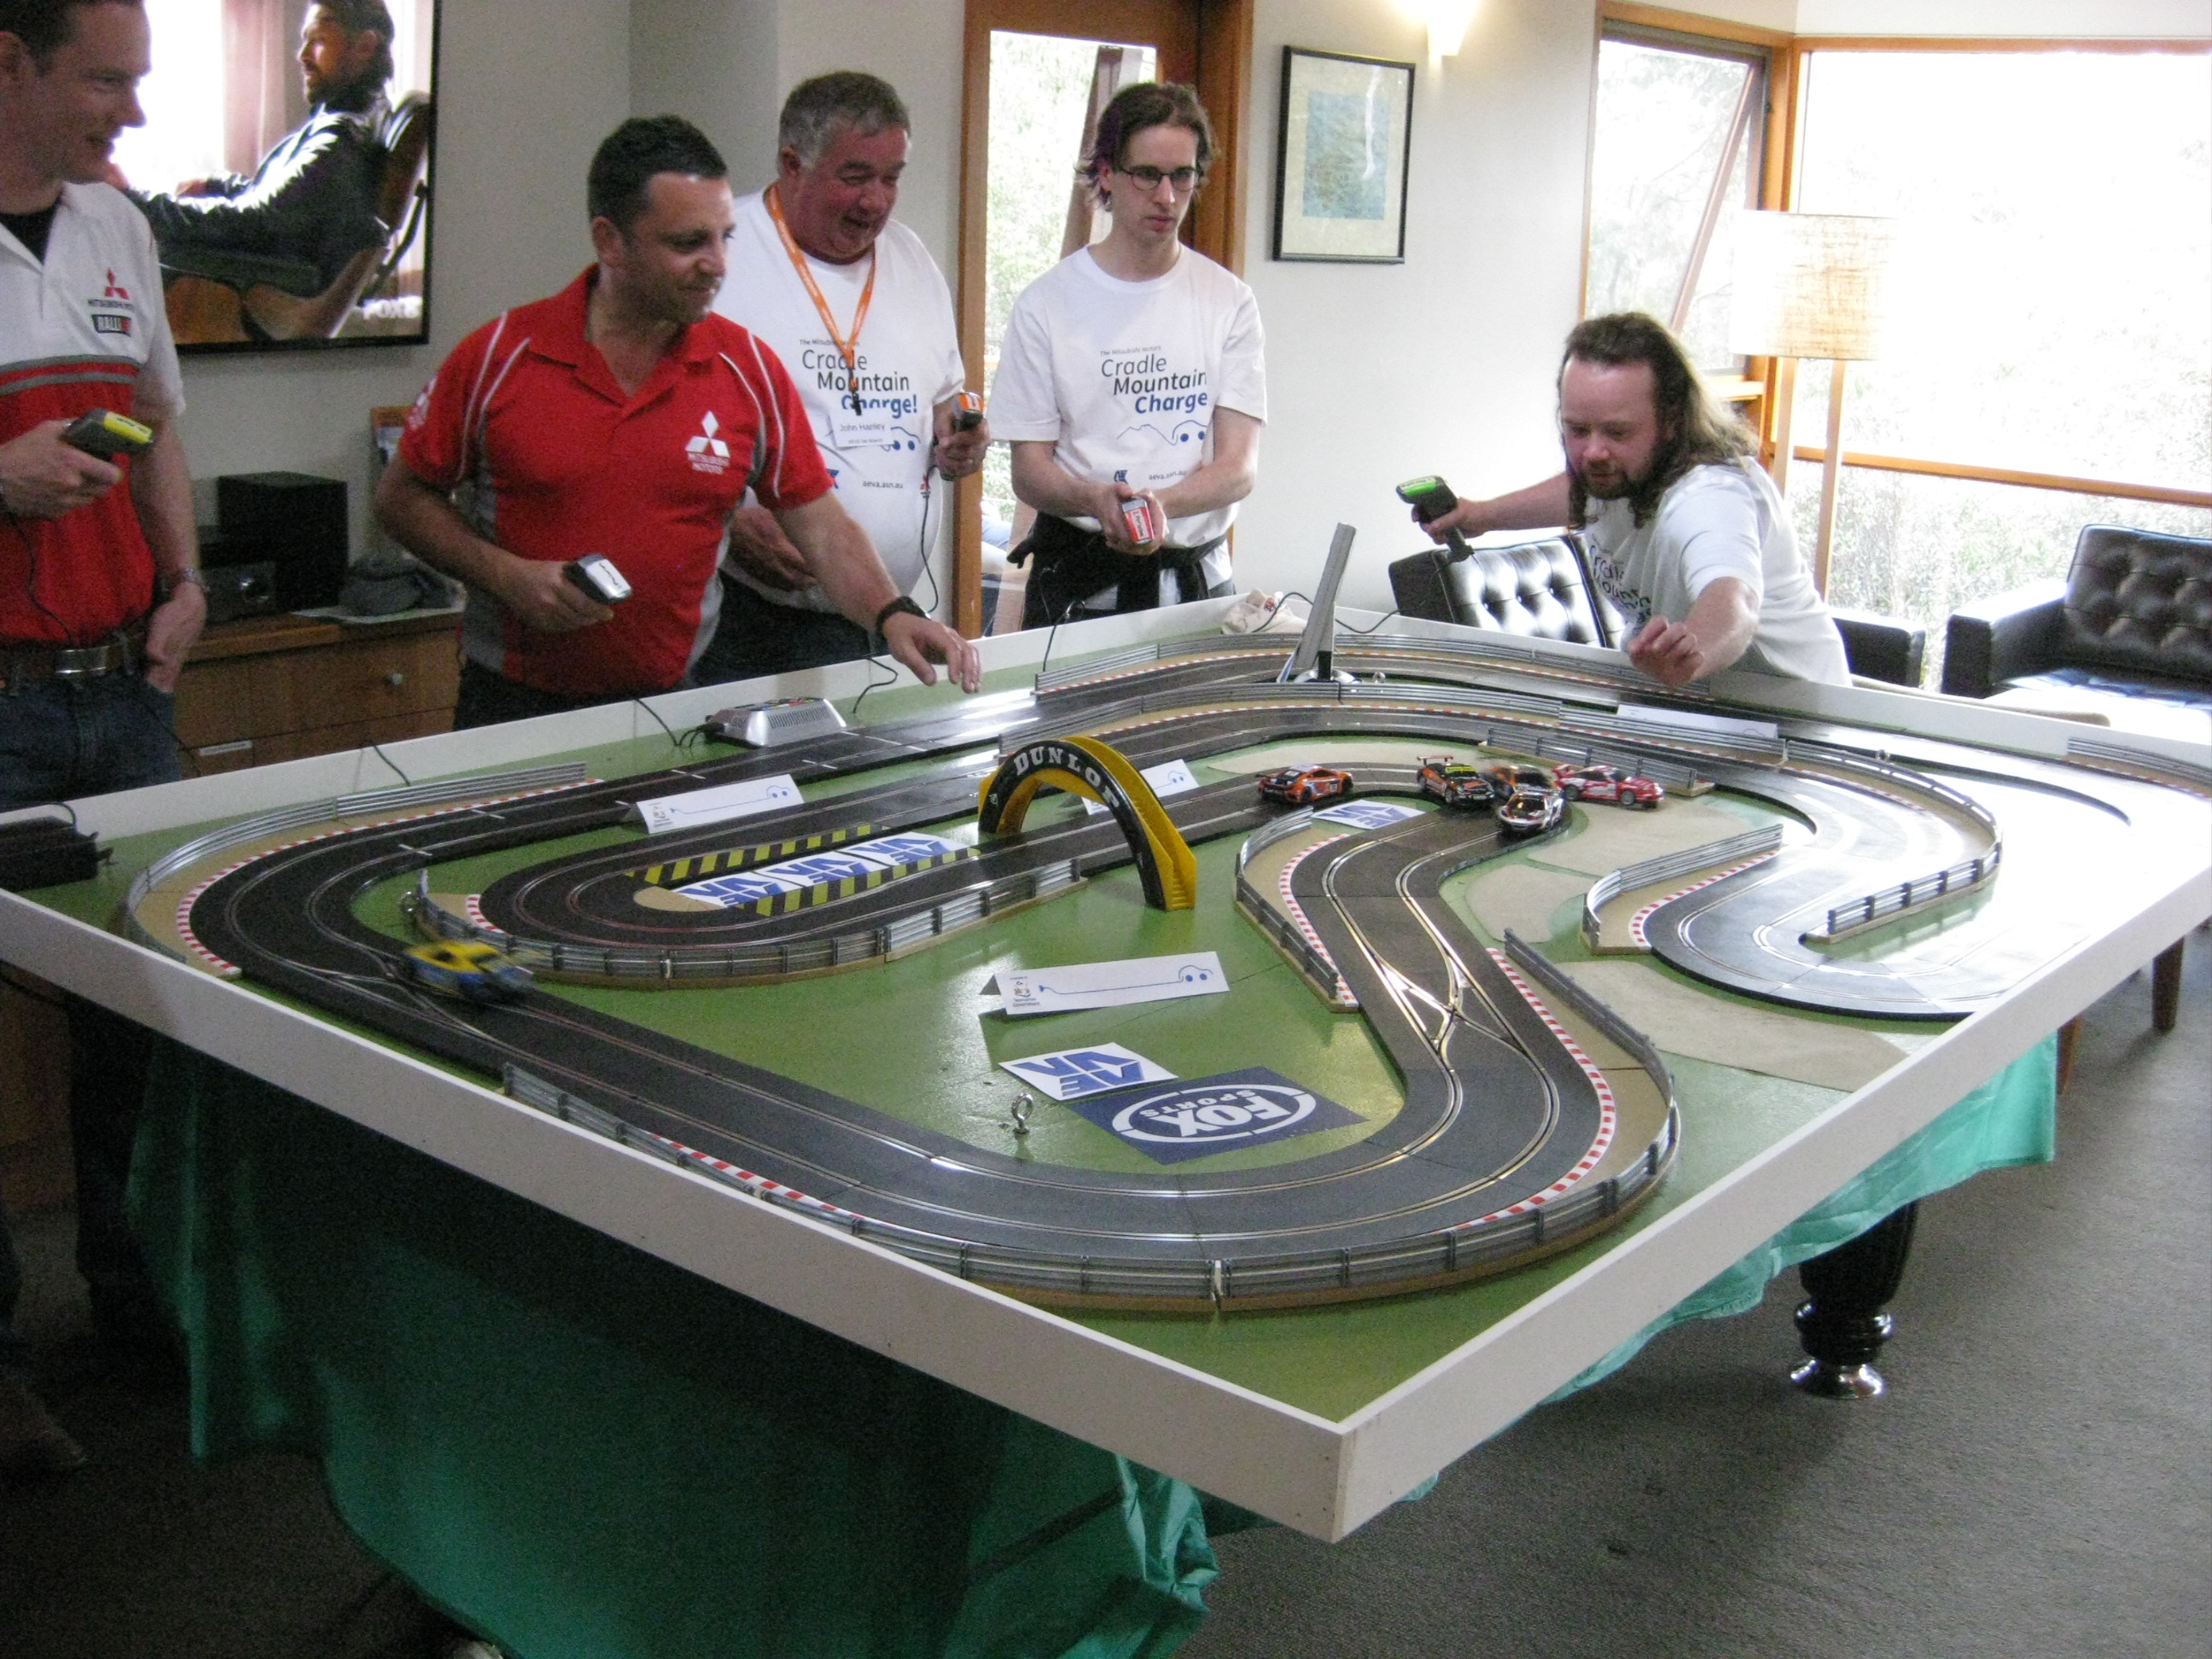 Electric car racing at Cradle Mountain Lodge